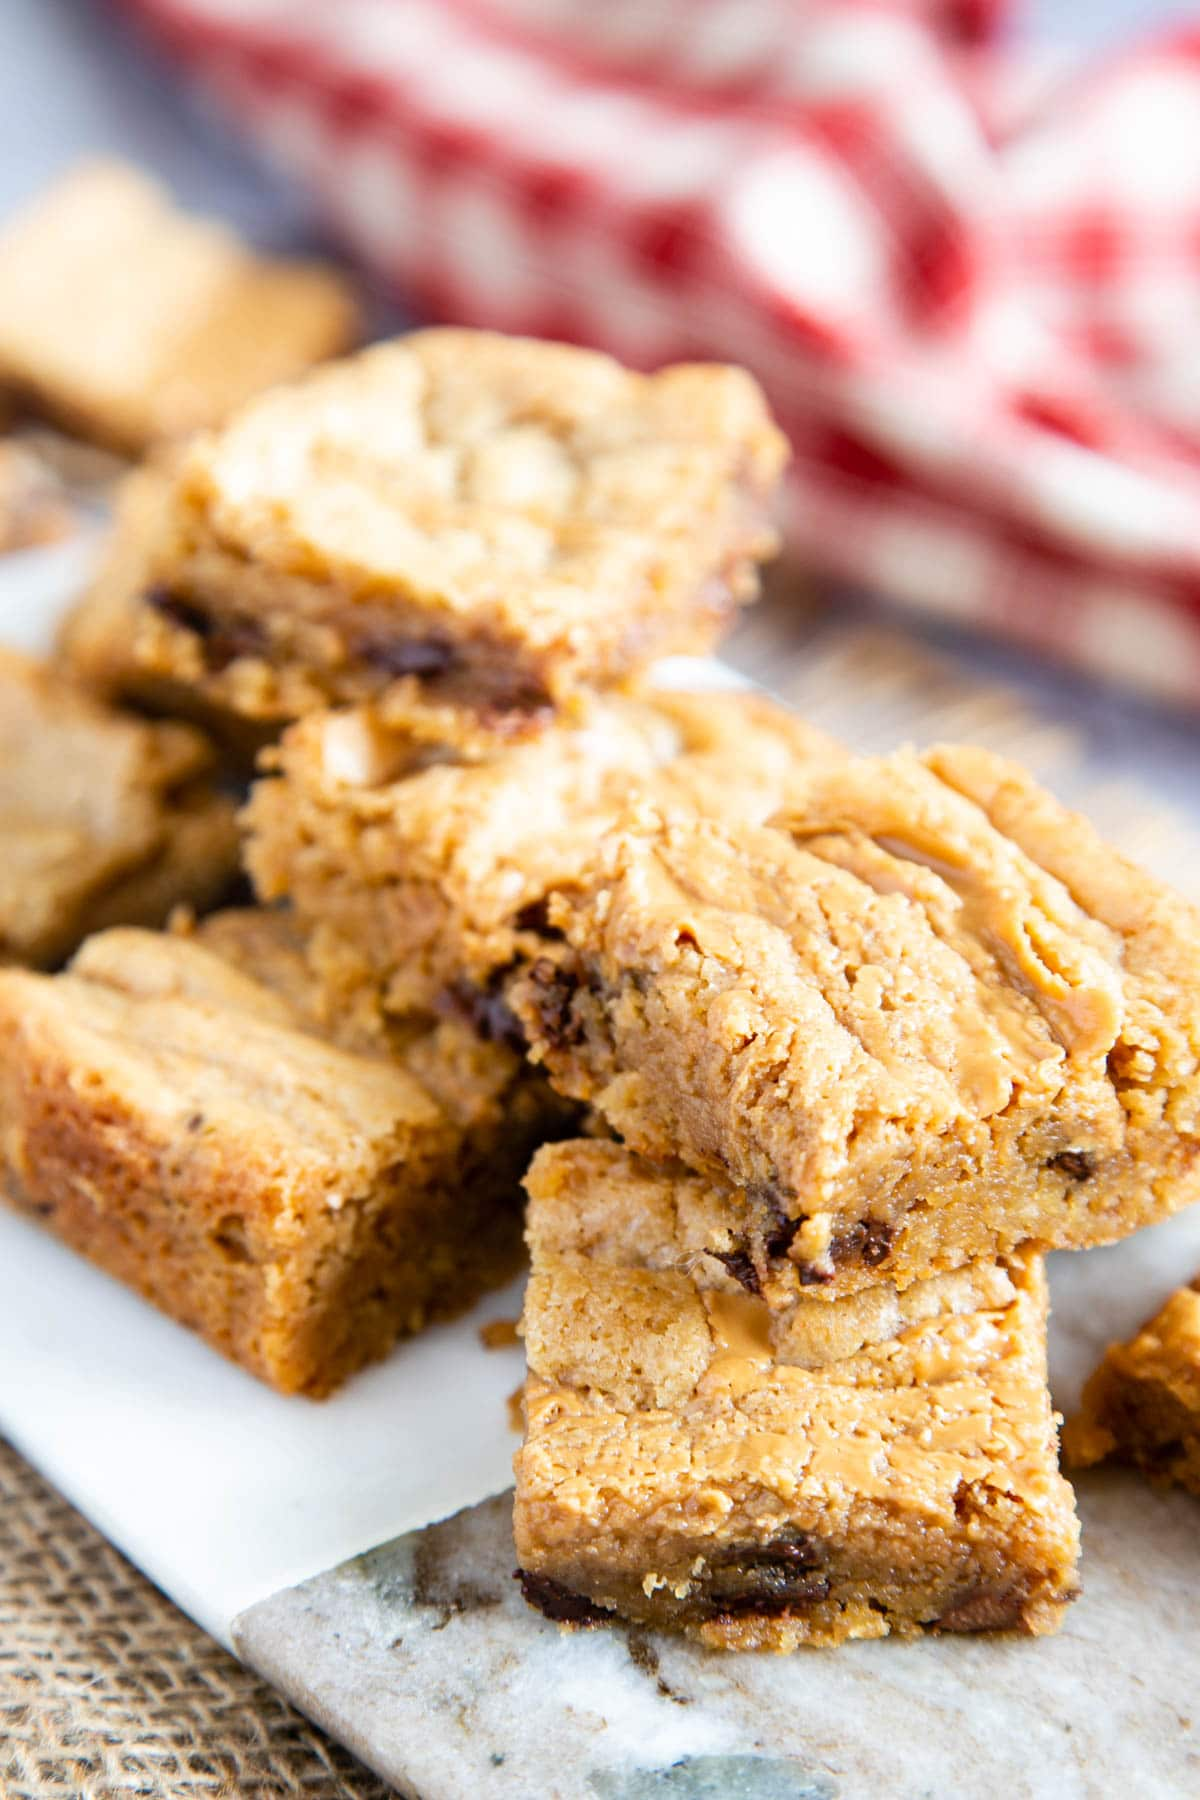 A close up of delicious golden peanut butter blondies stacked two high on a marble board. The chocolate chips can be seen.